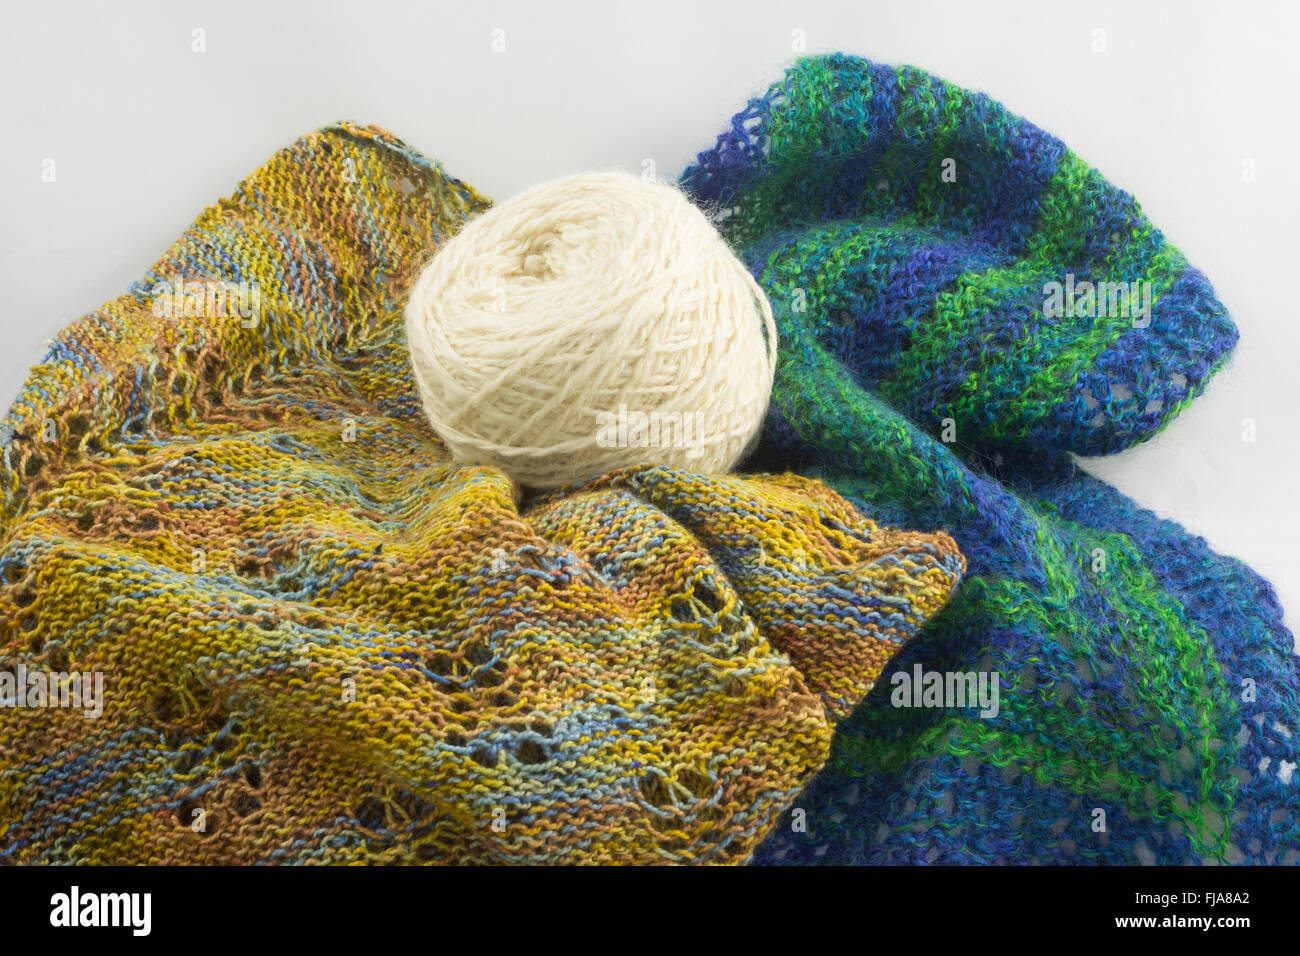 knitted items and ball of wool - Stock Image